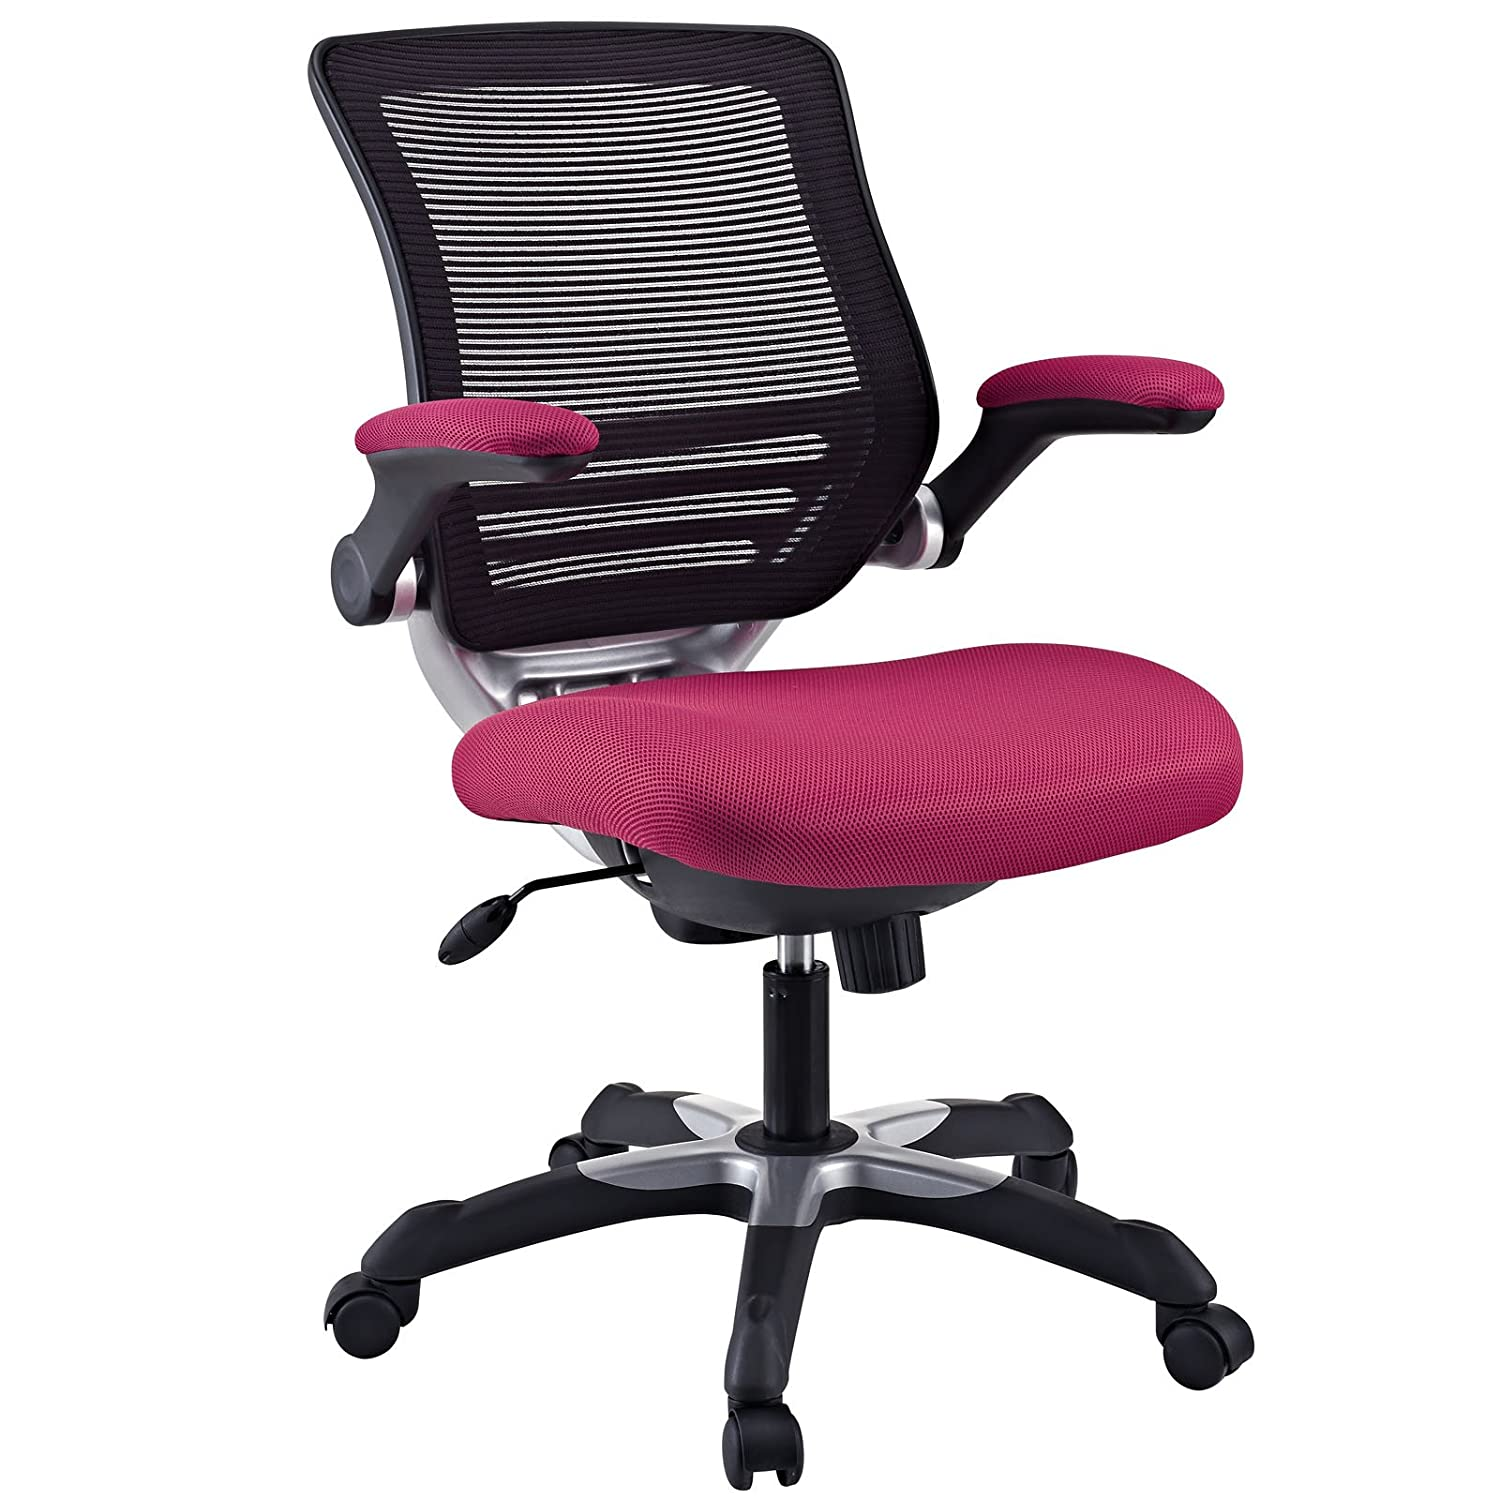 seat racing black computer high red office reclining executive ergonomic gaming pu homcom chair leather home back goods